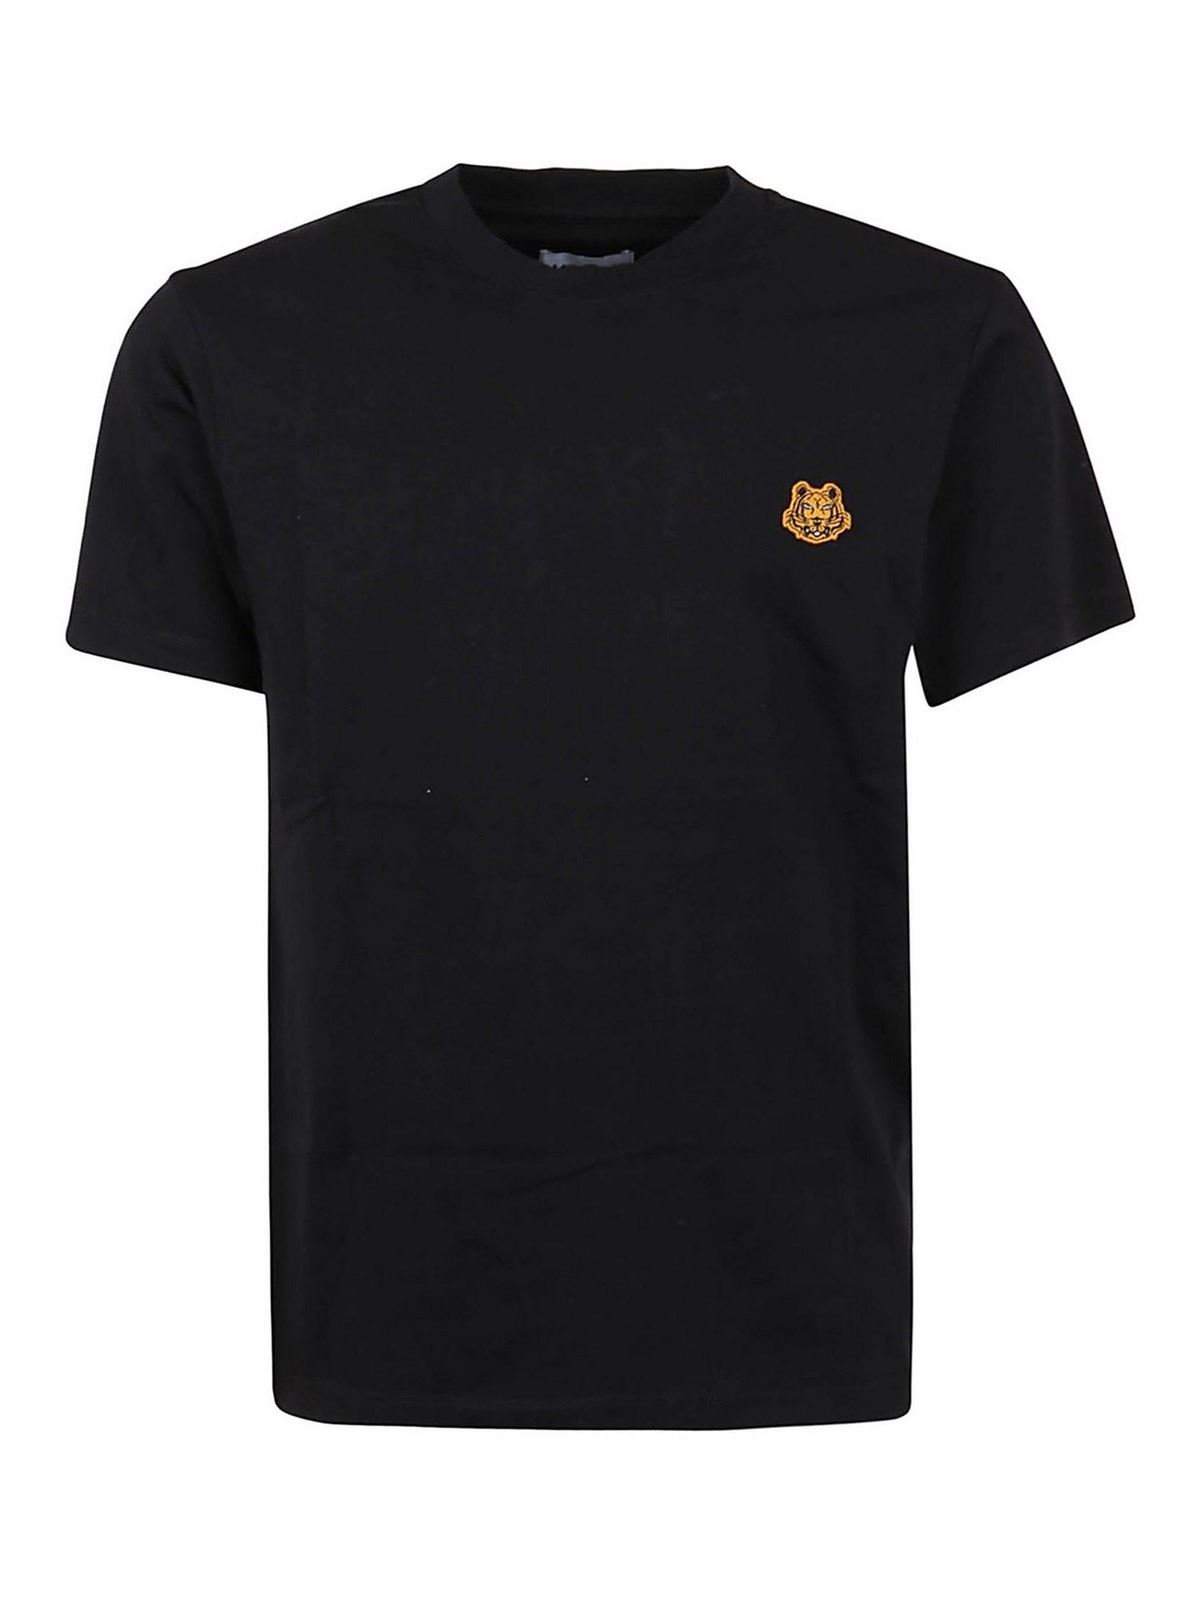 Kenzo TIGER PATCH COTTON T-SHIRT IN BLACK